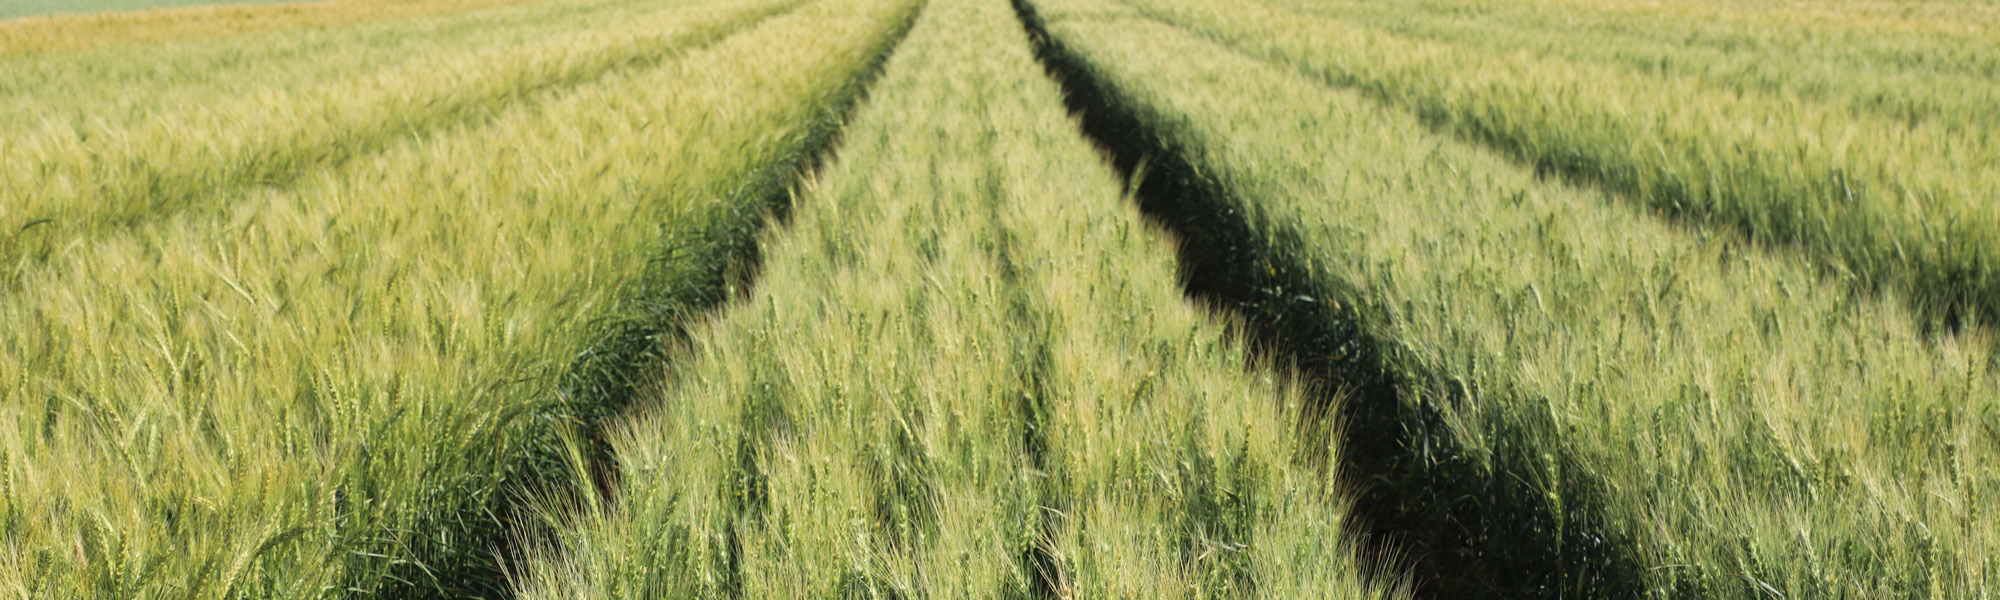 Genetics-wheat Banner